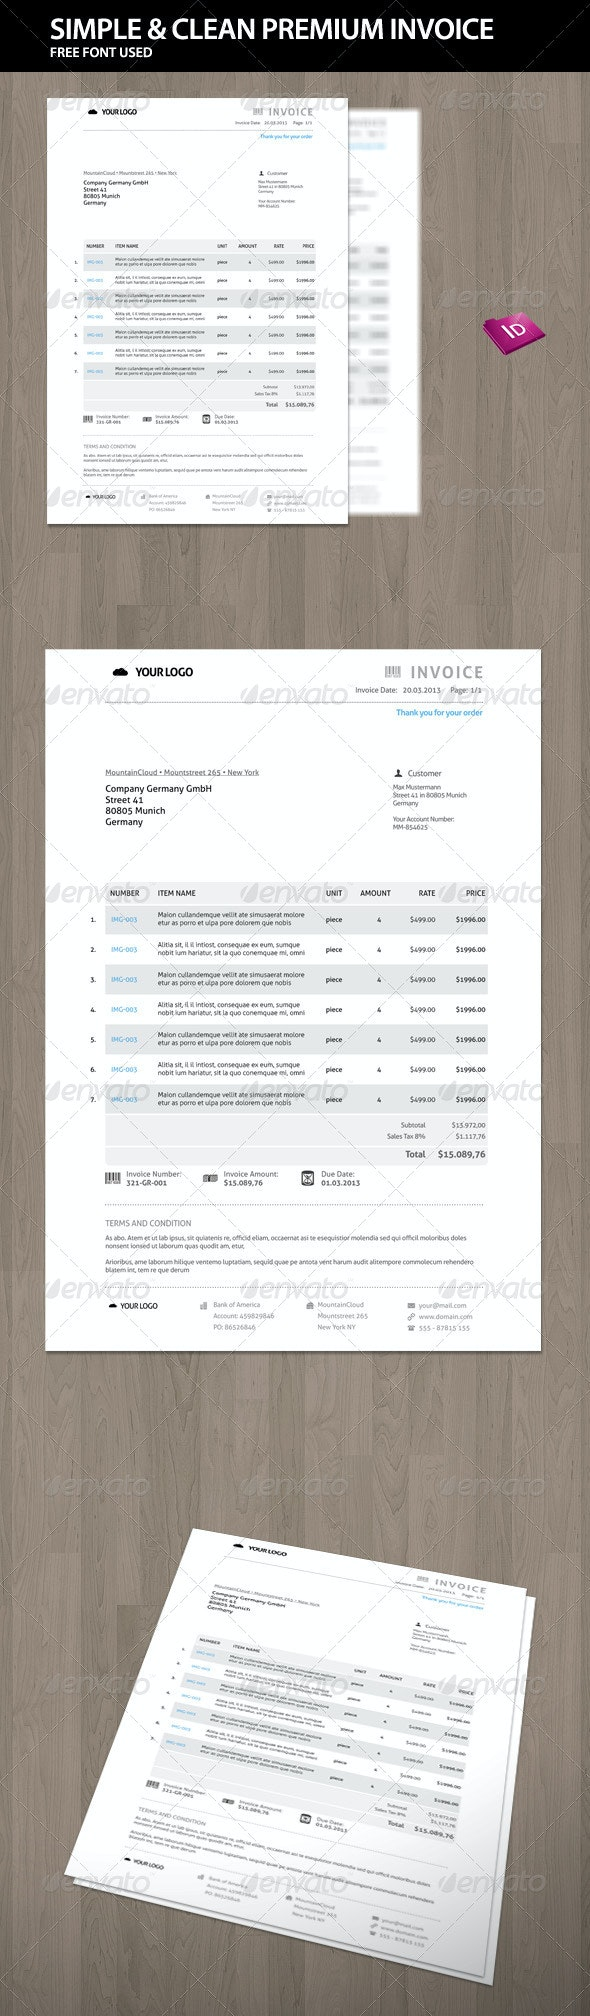 Clean and Simple Premium Invoice - Proposals & Invoices Stationery